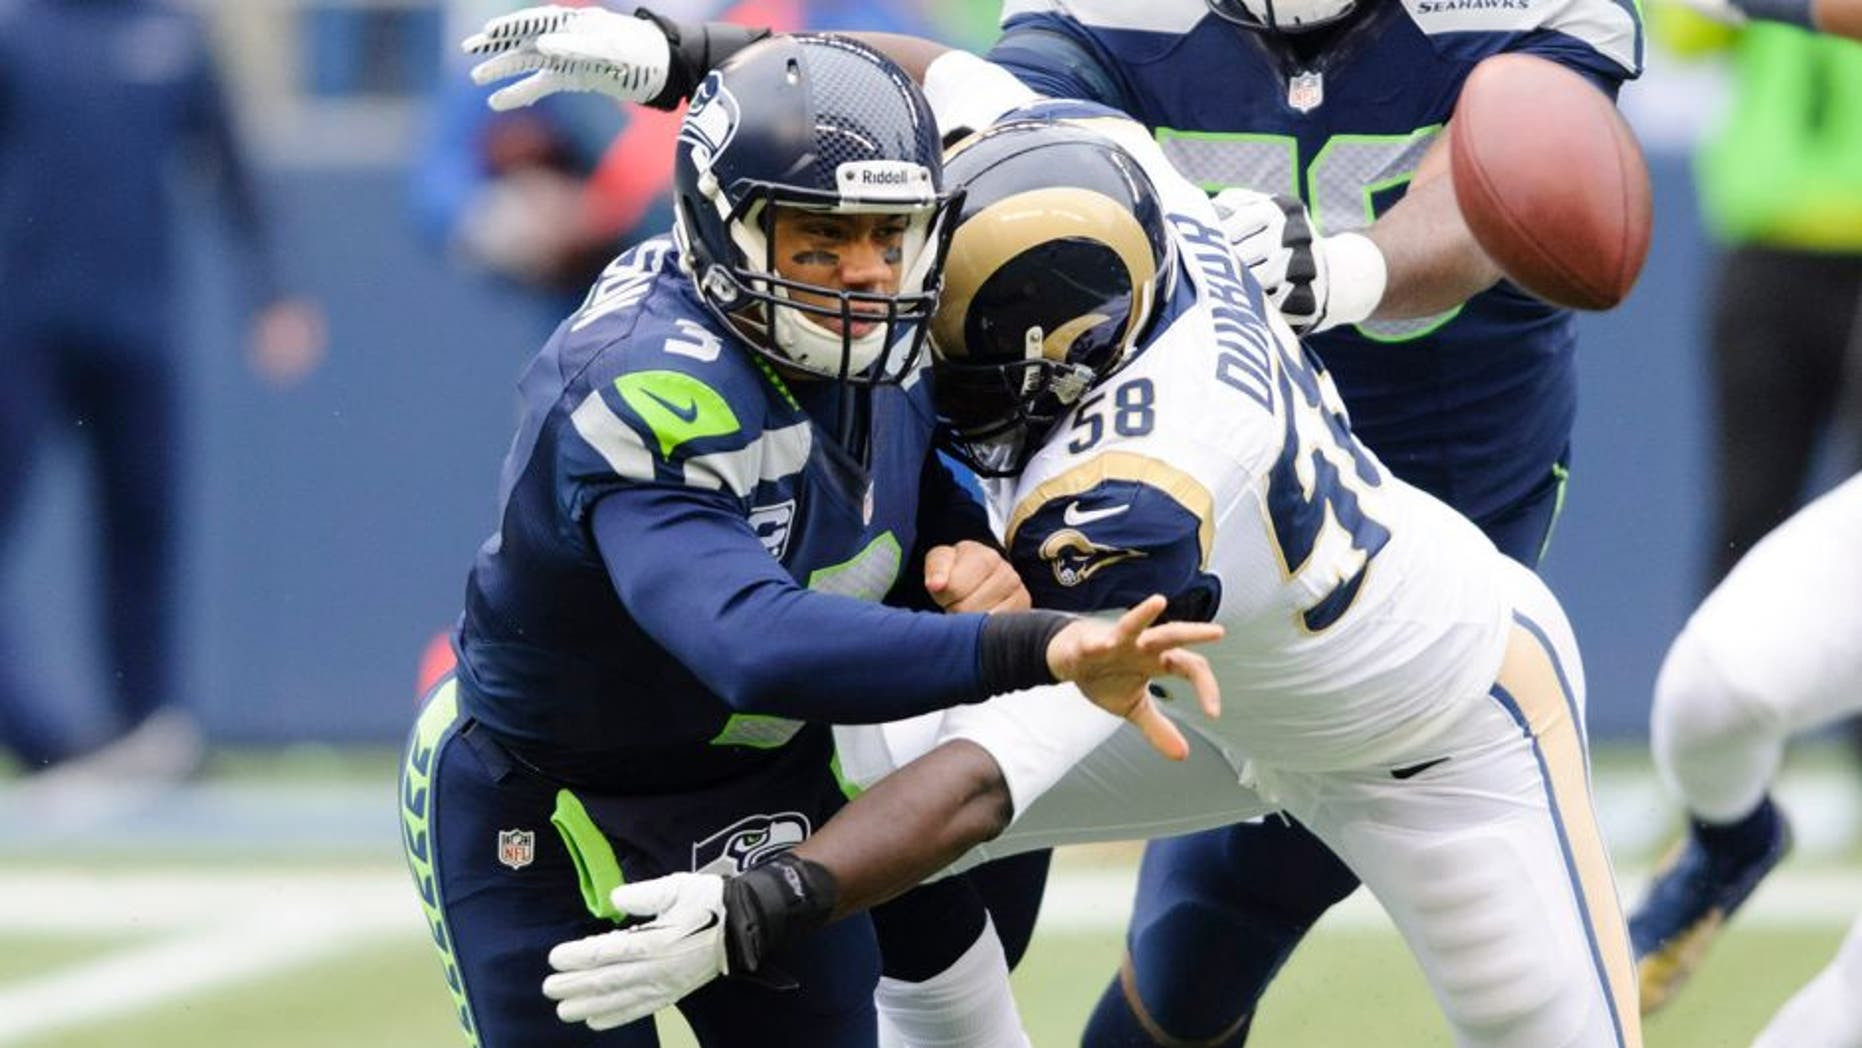 Dec 29, 2013; Seattle, WA, USA; Seattle Seahawks quarterback Russell Wilson (3) throws the ball as St. Louis Rams outside linebacker Jo-Lonn Dunbar (58) tackles during the first half at CenturyLink Field. Mandatory Credit: Steven Bisig-USA TODAY Sports